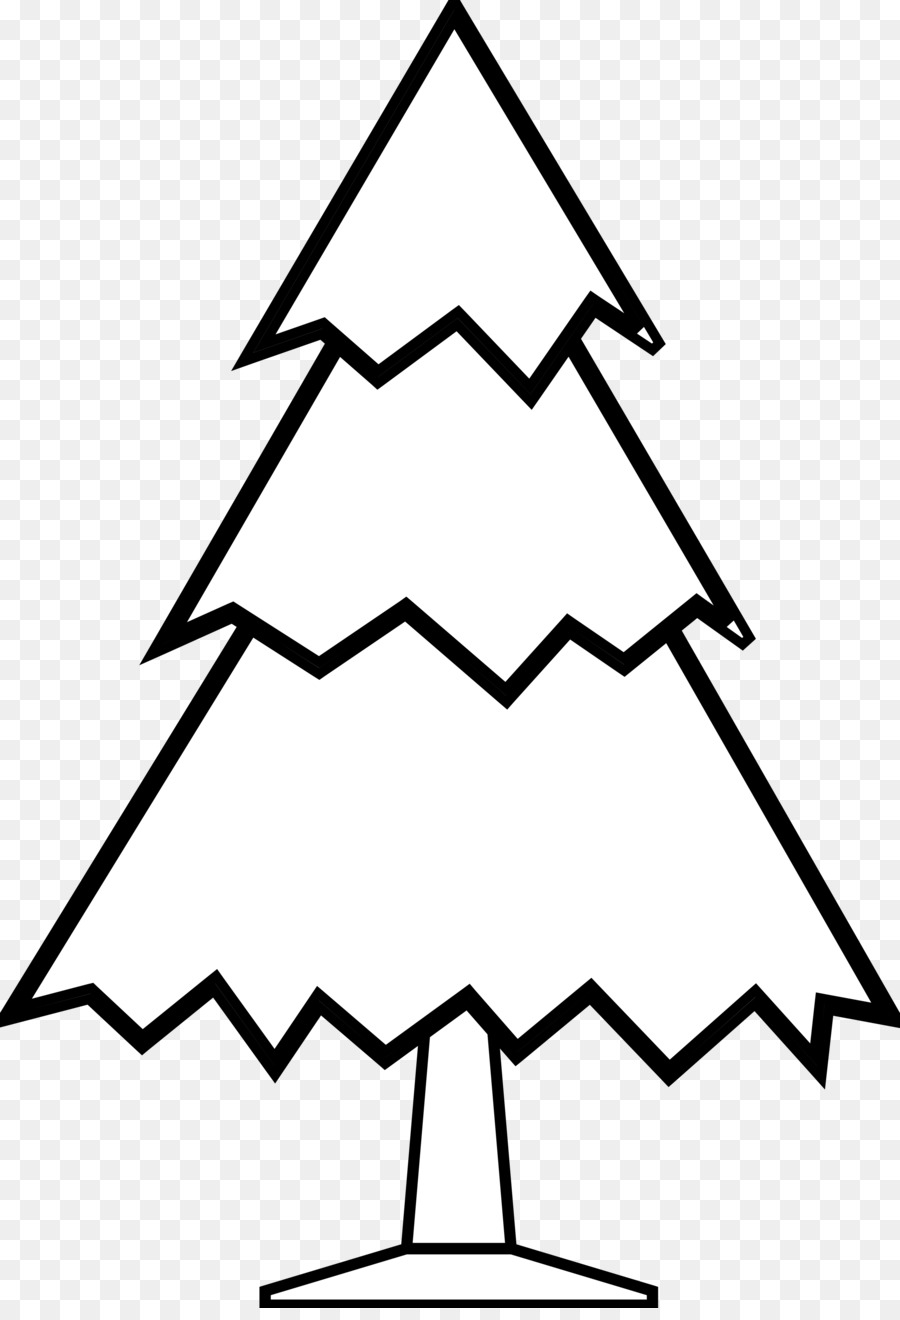 900x1320 Drawing, Black, Triangle, Transparent Png Image Clipart Free